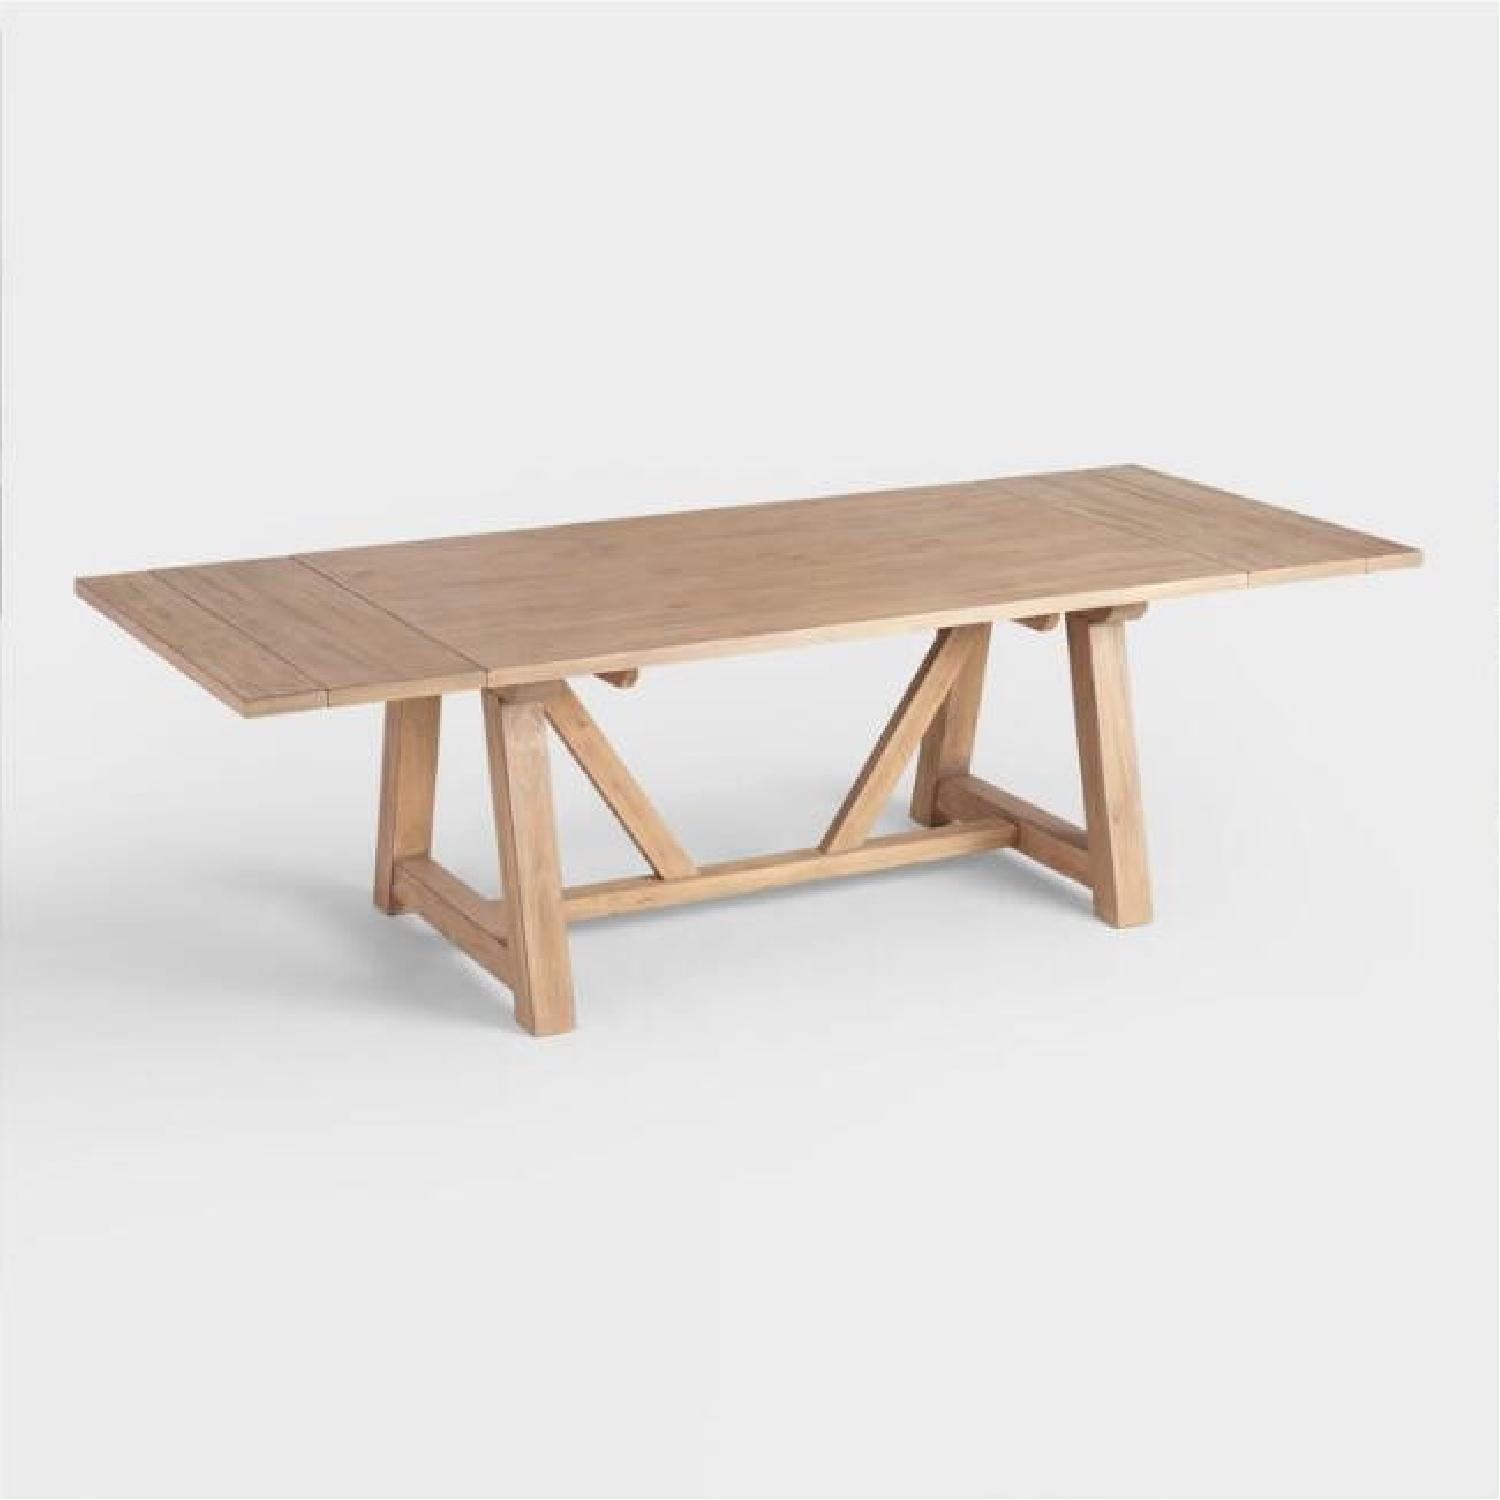 World Market Farmhouse Extension Dining Table - image-1